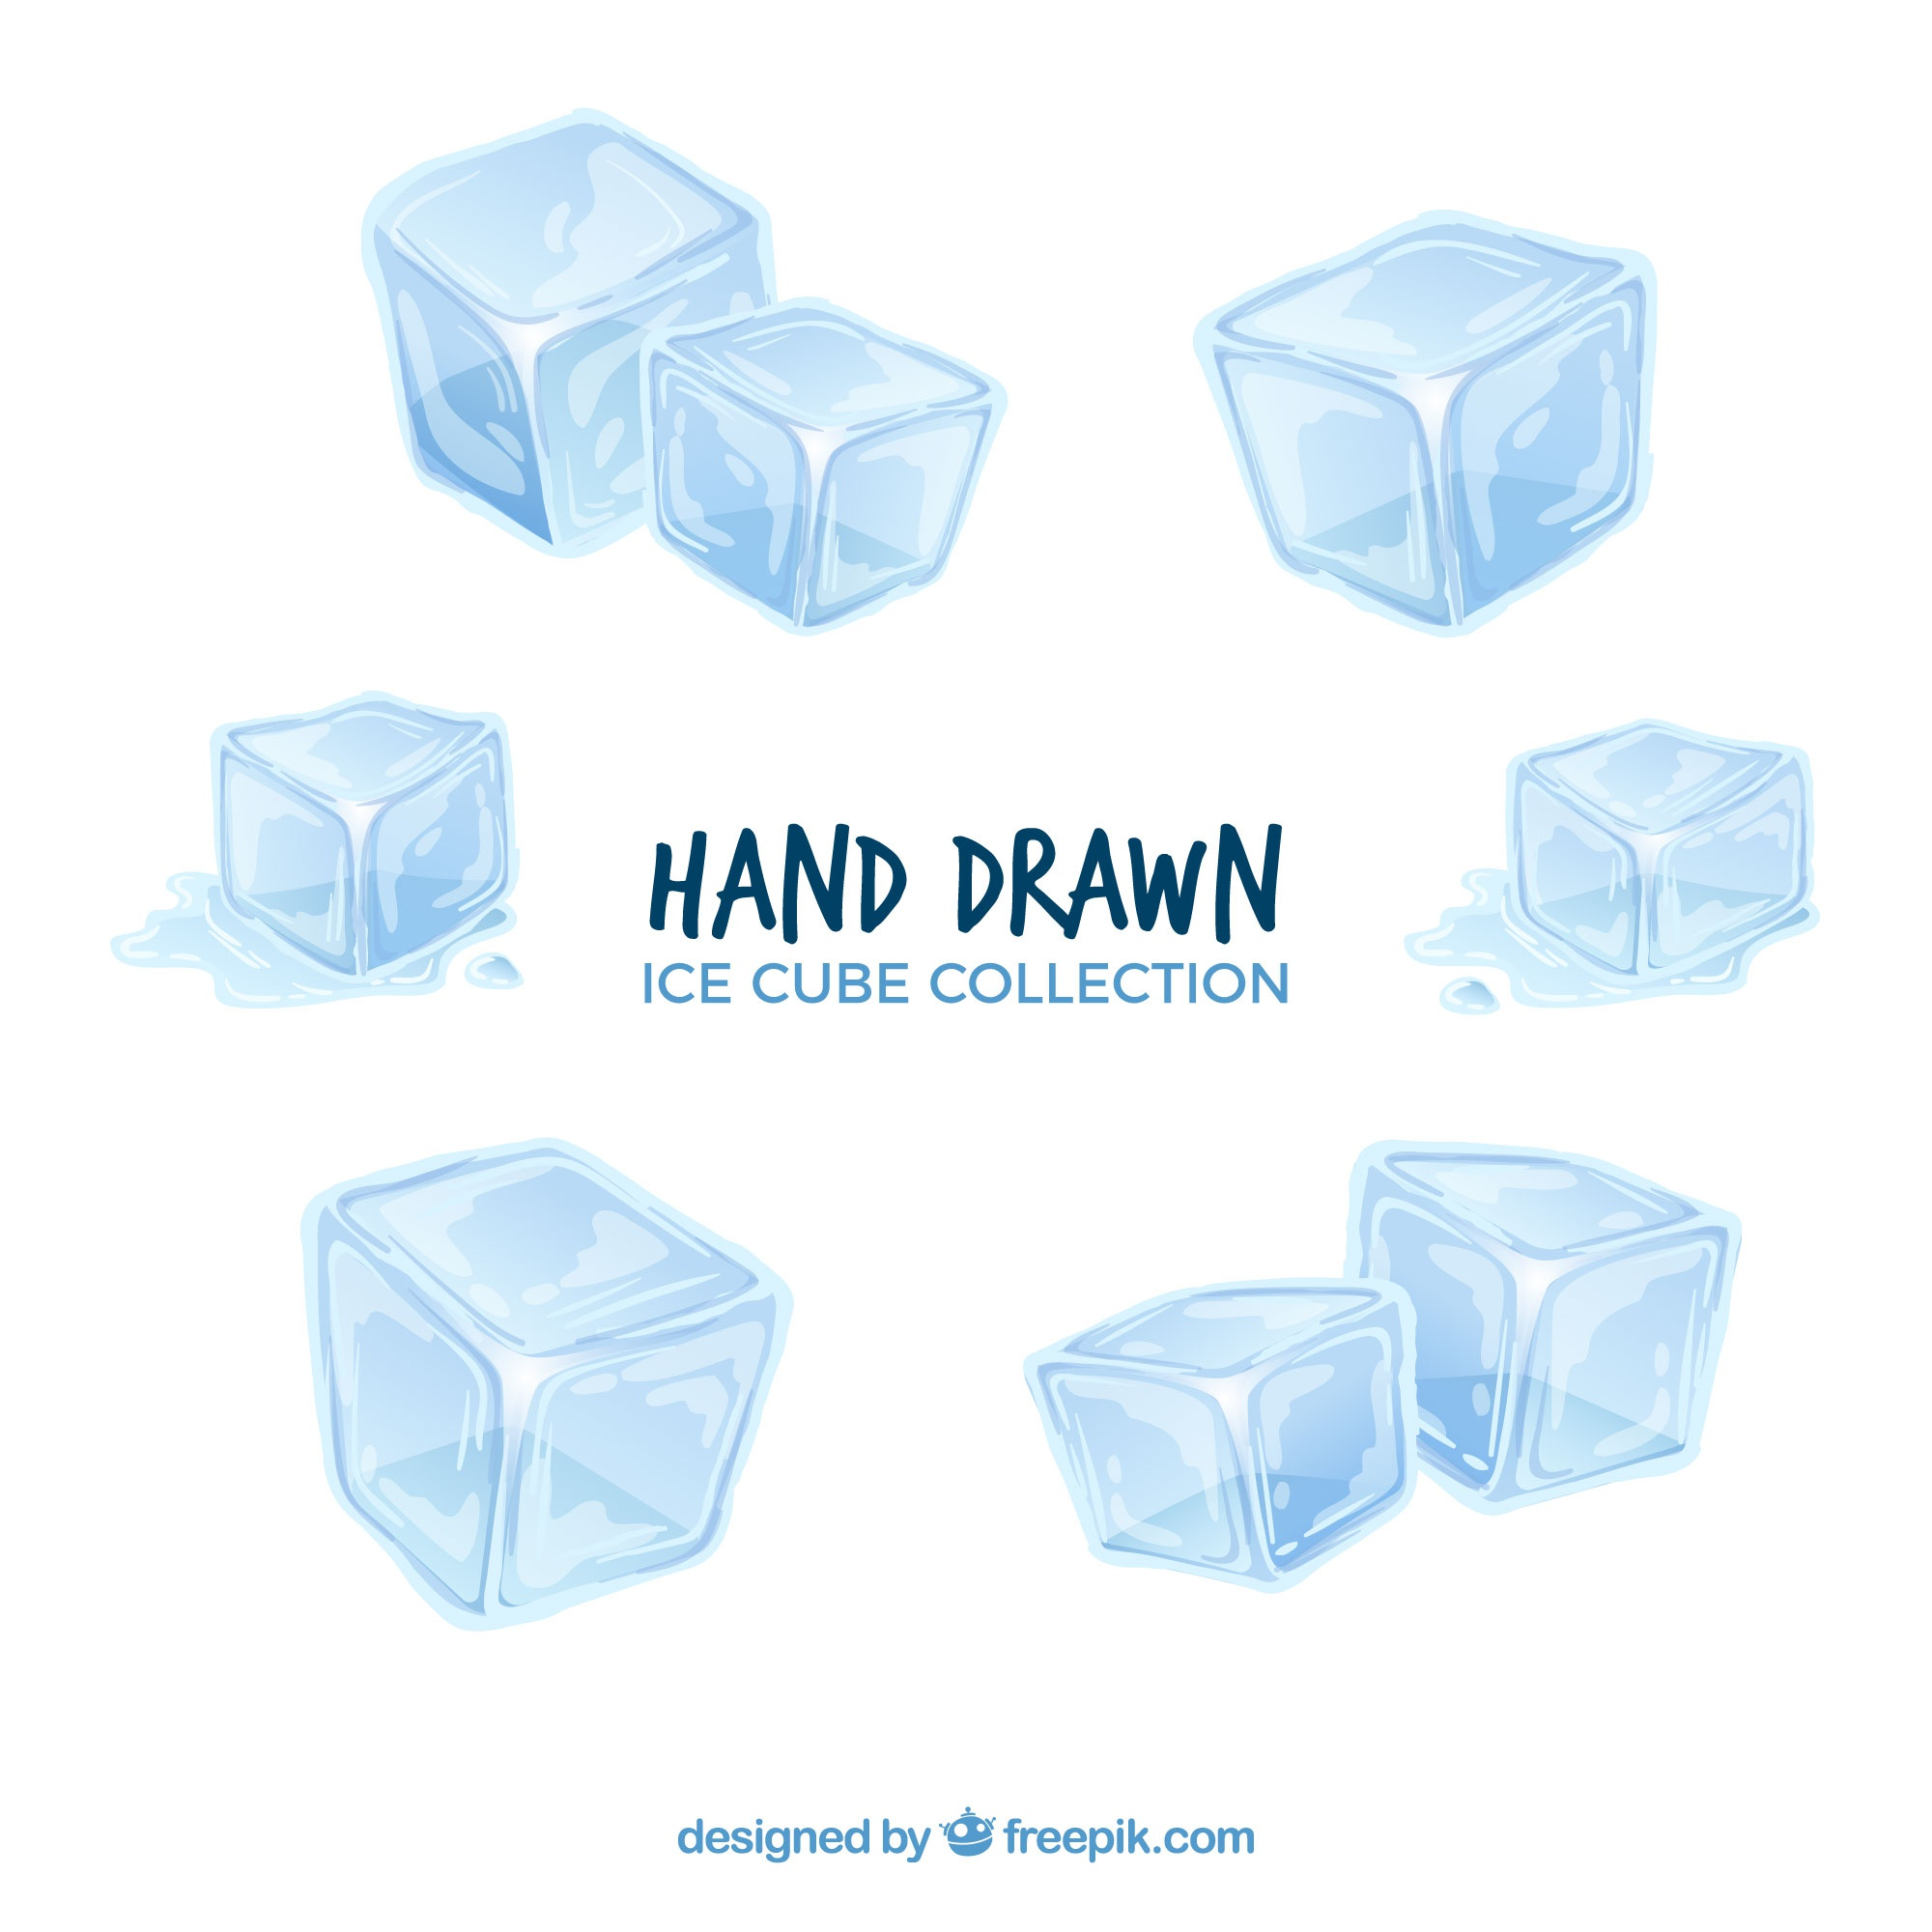 Ice cube collection with hand drawn style